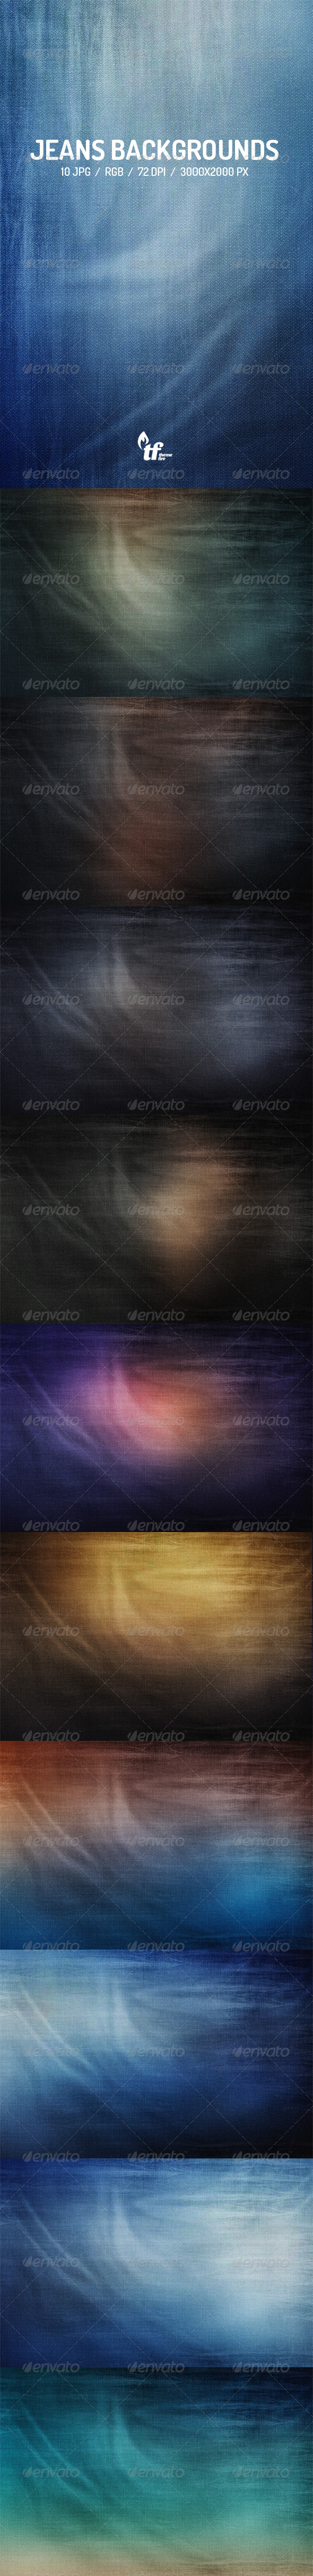 GraphicRiver Jeans Backgrounds 7571320